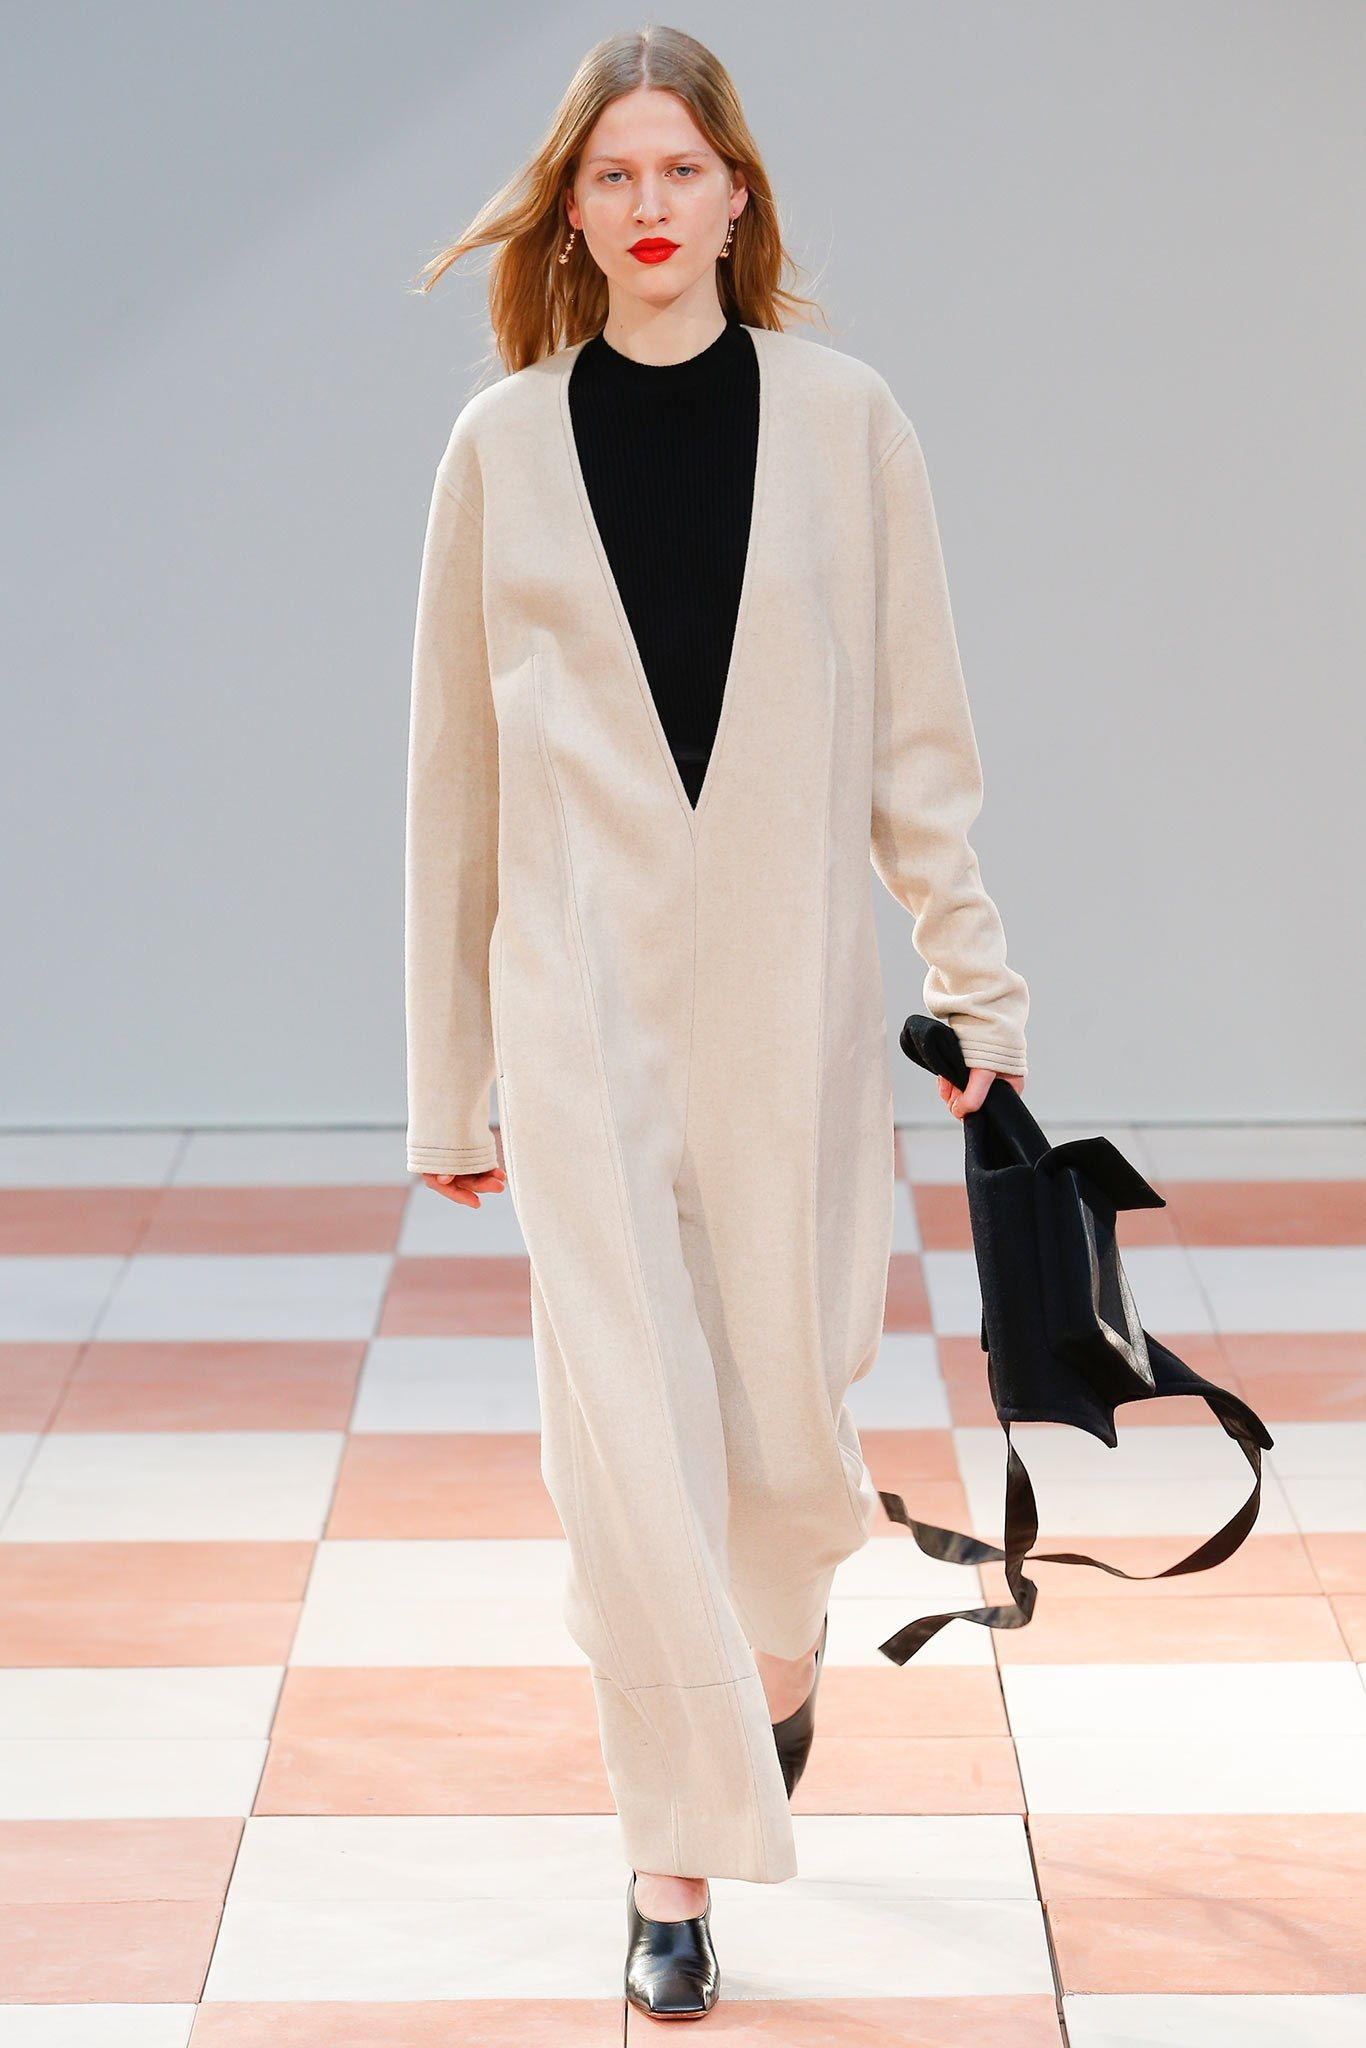 d6559395c2f0 Céline Fall 2015 Ready-to-Wear Collection - Vogue